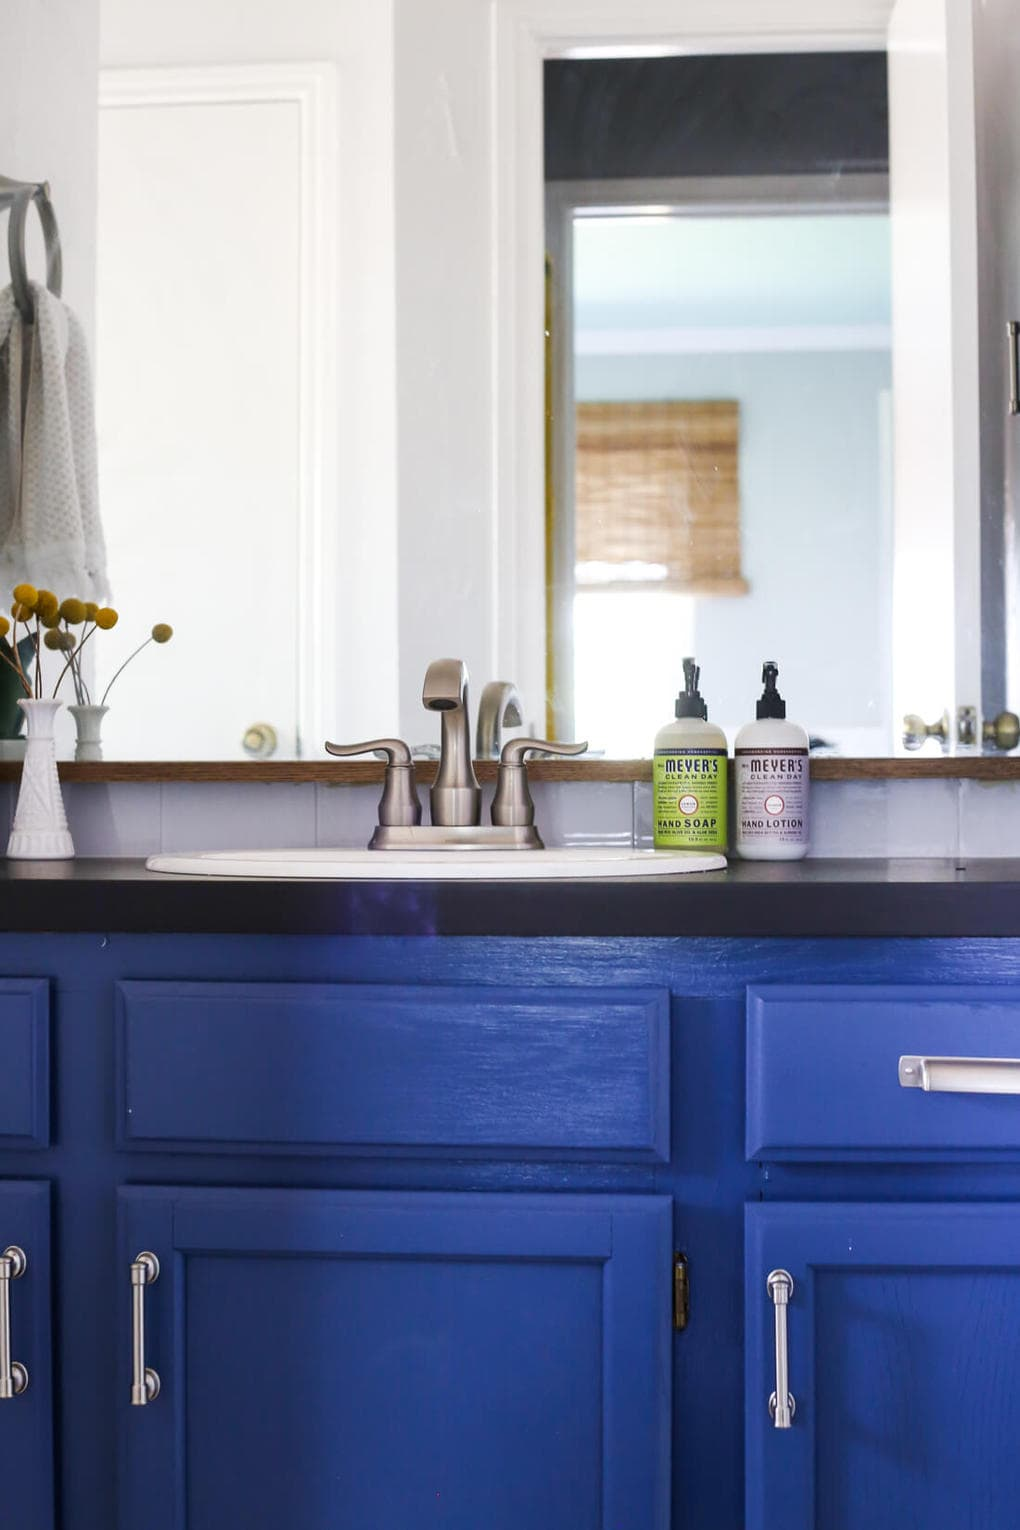 Our Bathrooms - Before & After | Love & Renovations